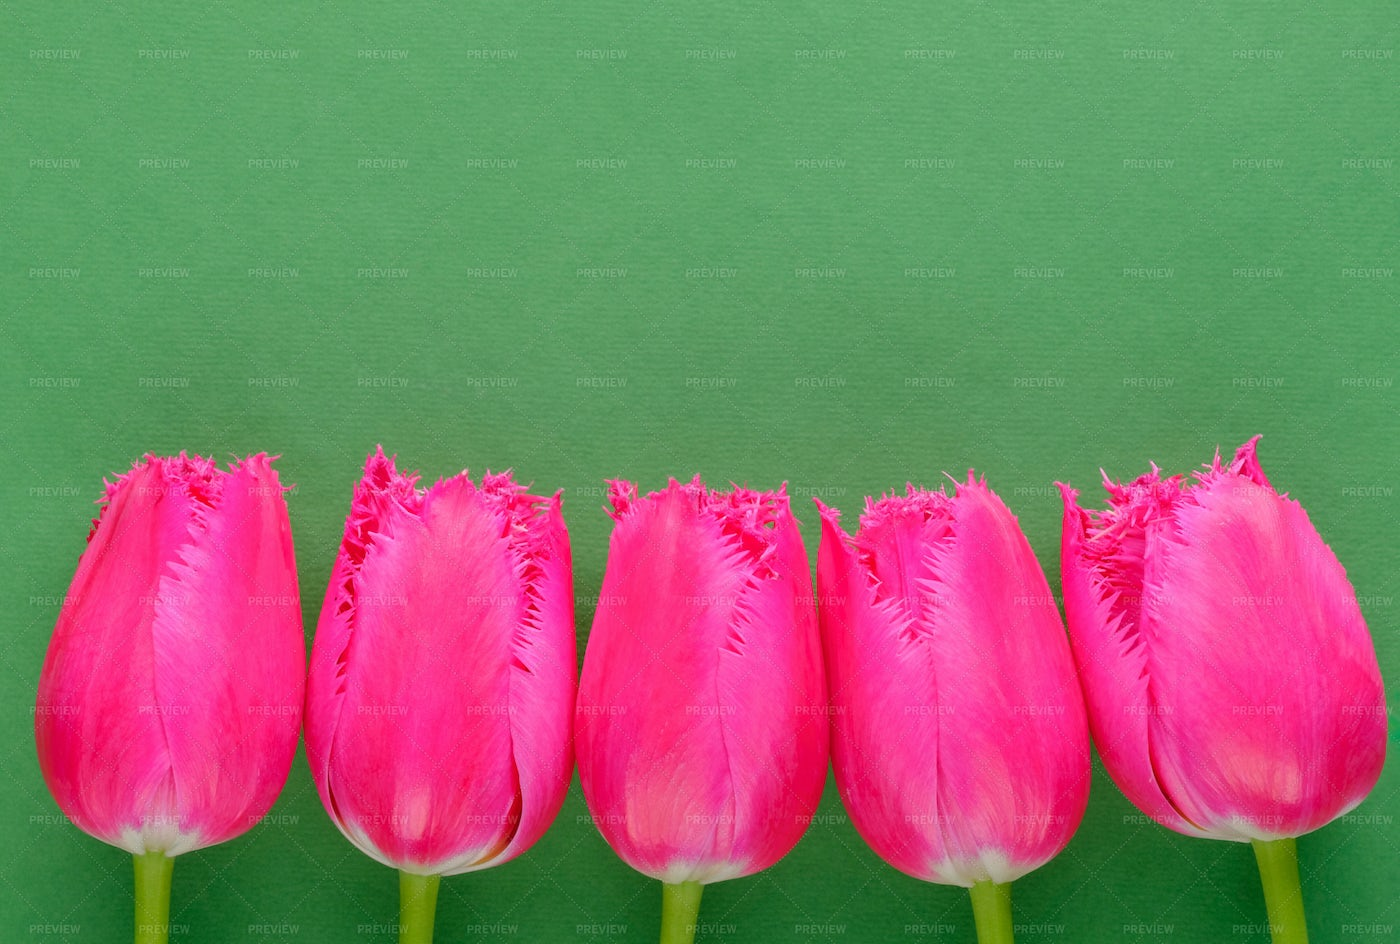 Pink Tulips On Green: Stock Photos